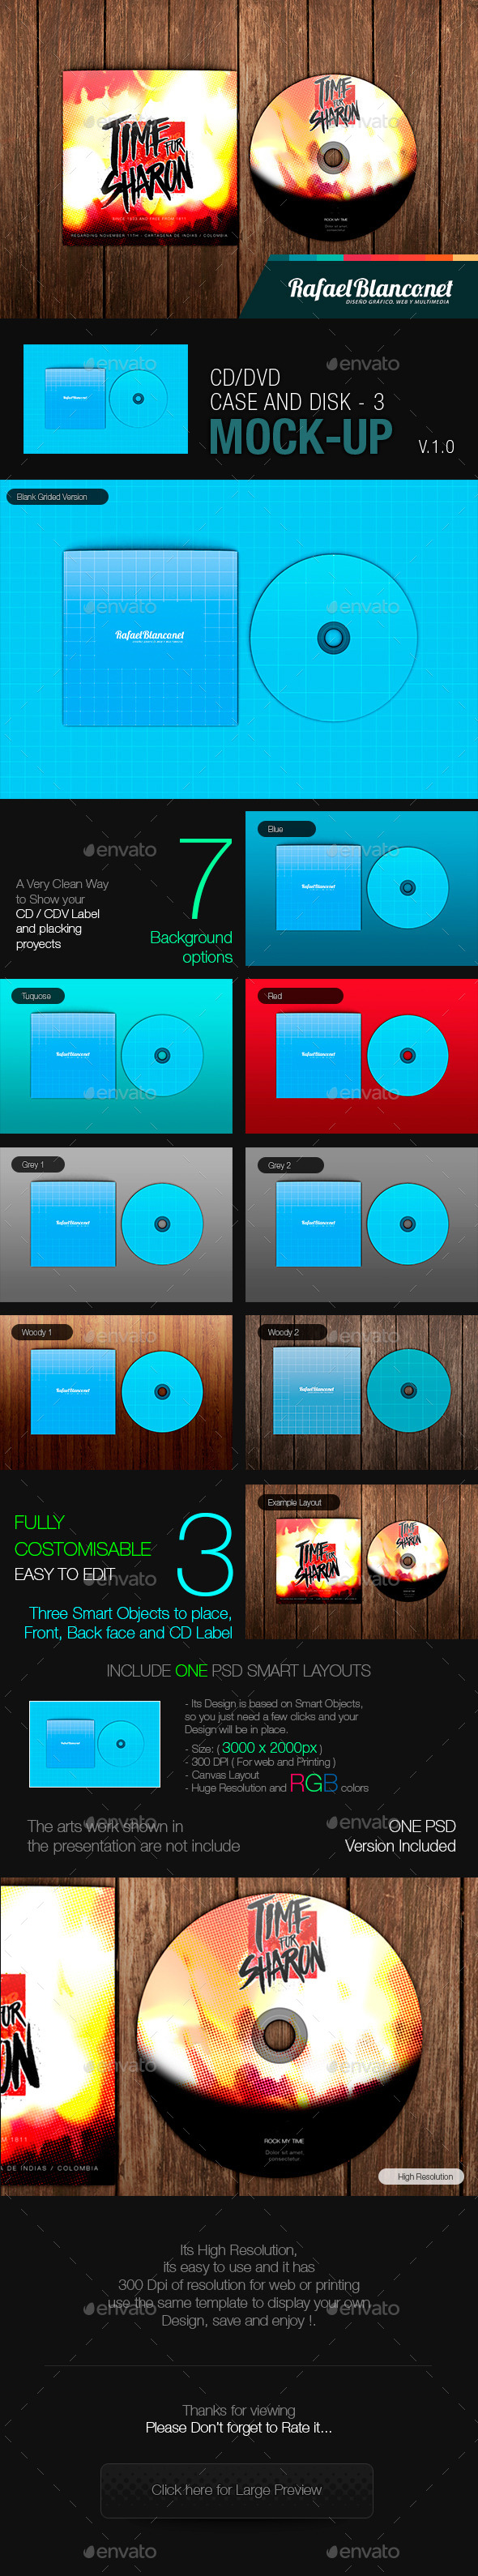 CD/DVD Case and Disk Mock-Up - 3 - Miscellaneous Packaging